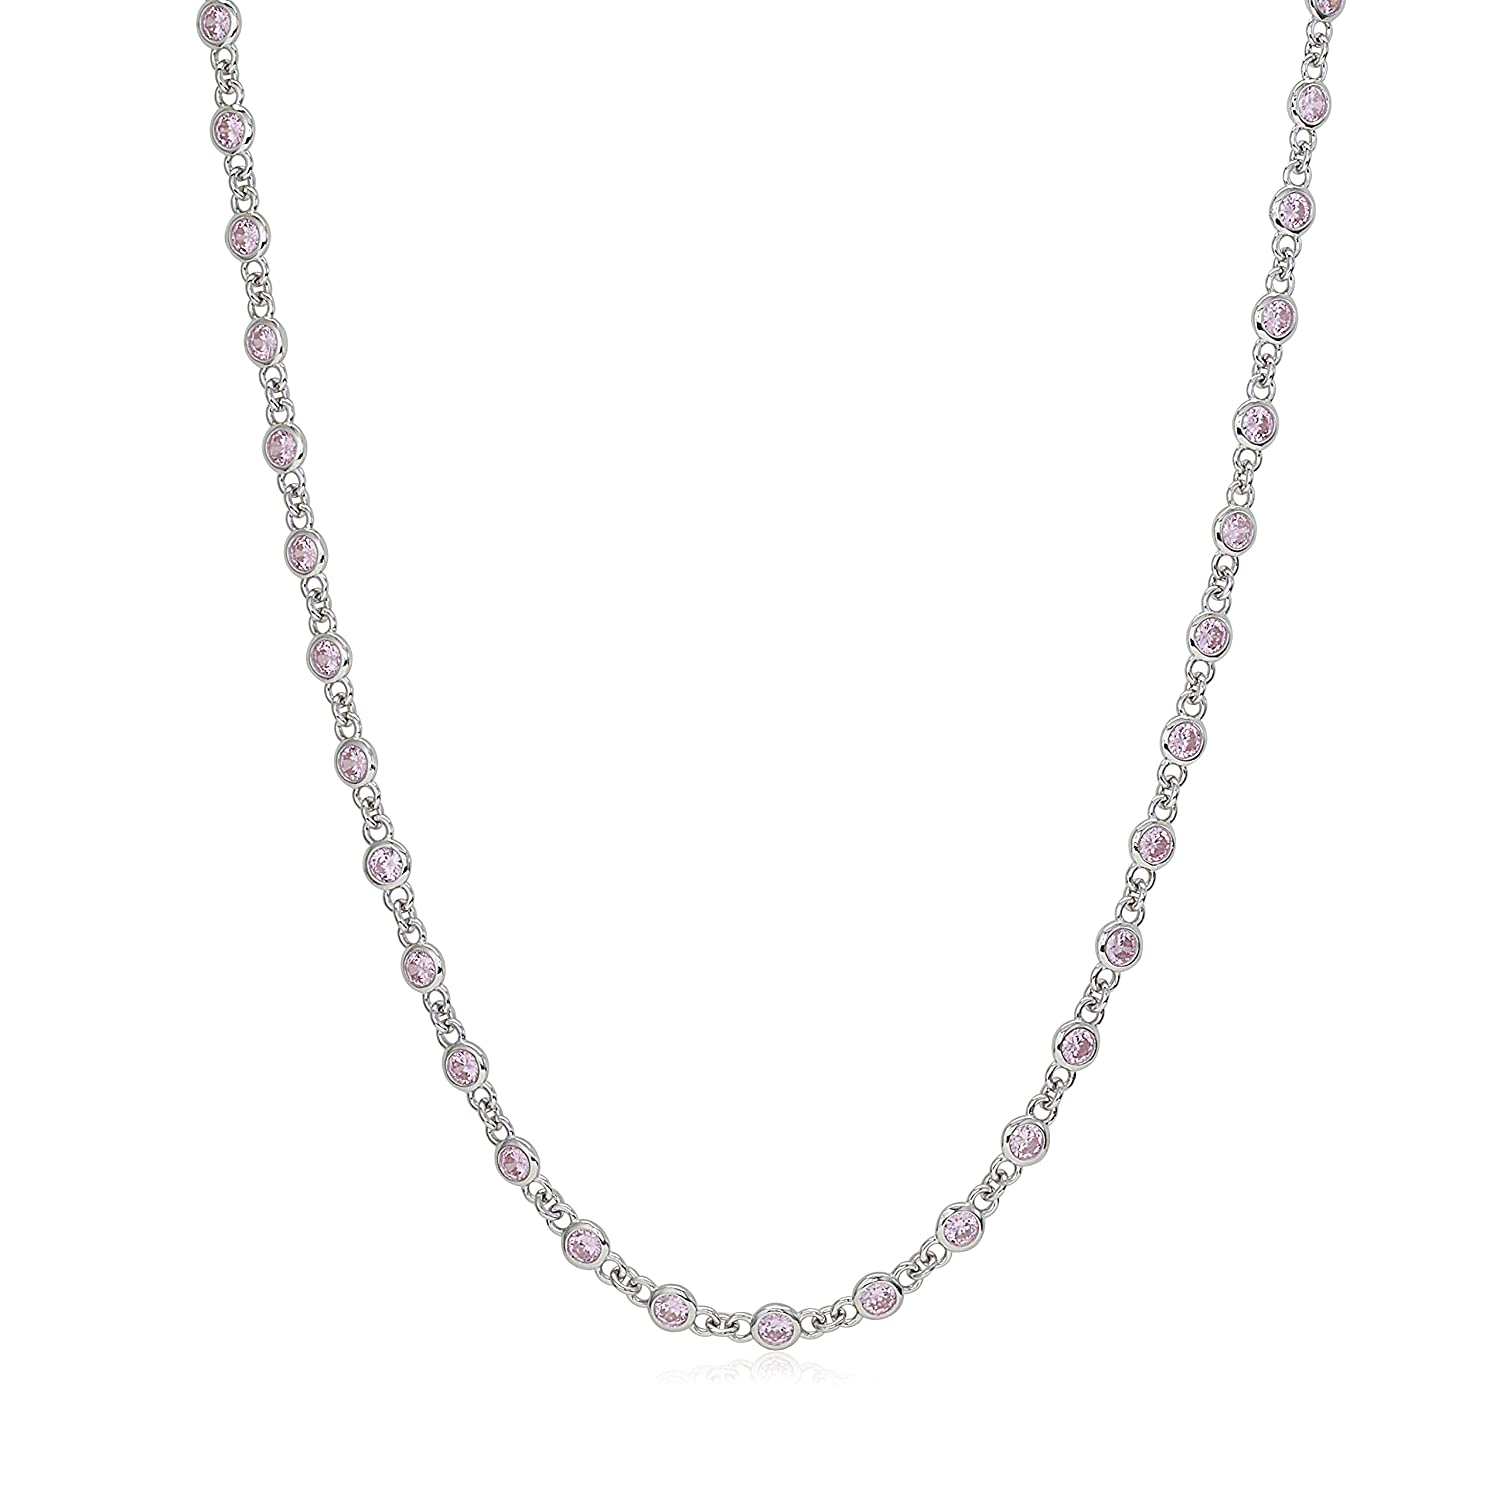 MASSETE Sterling Silver 925 By the Yard Long Opera Length Necklace Chain 35